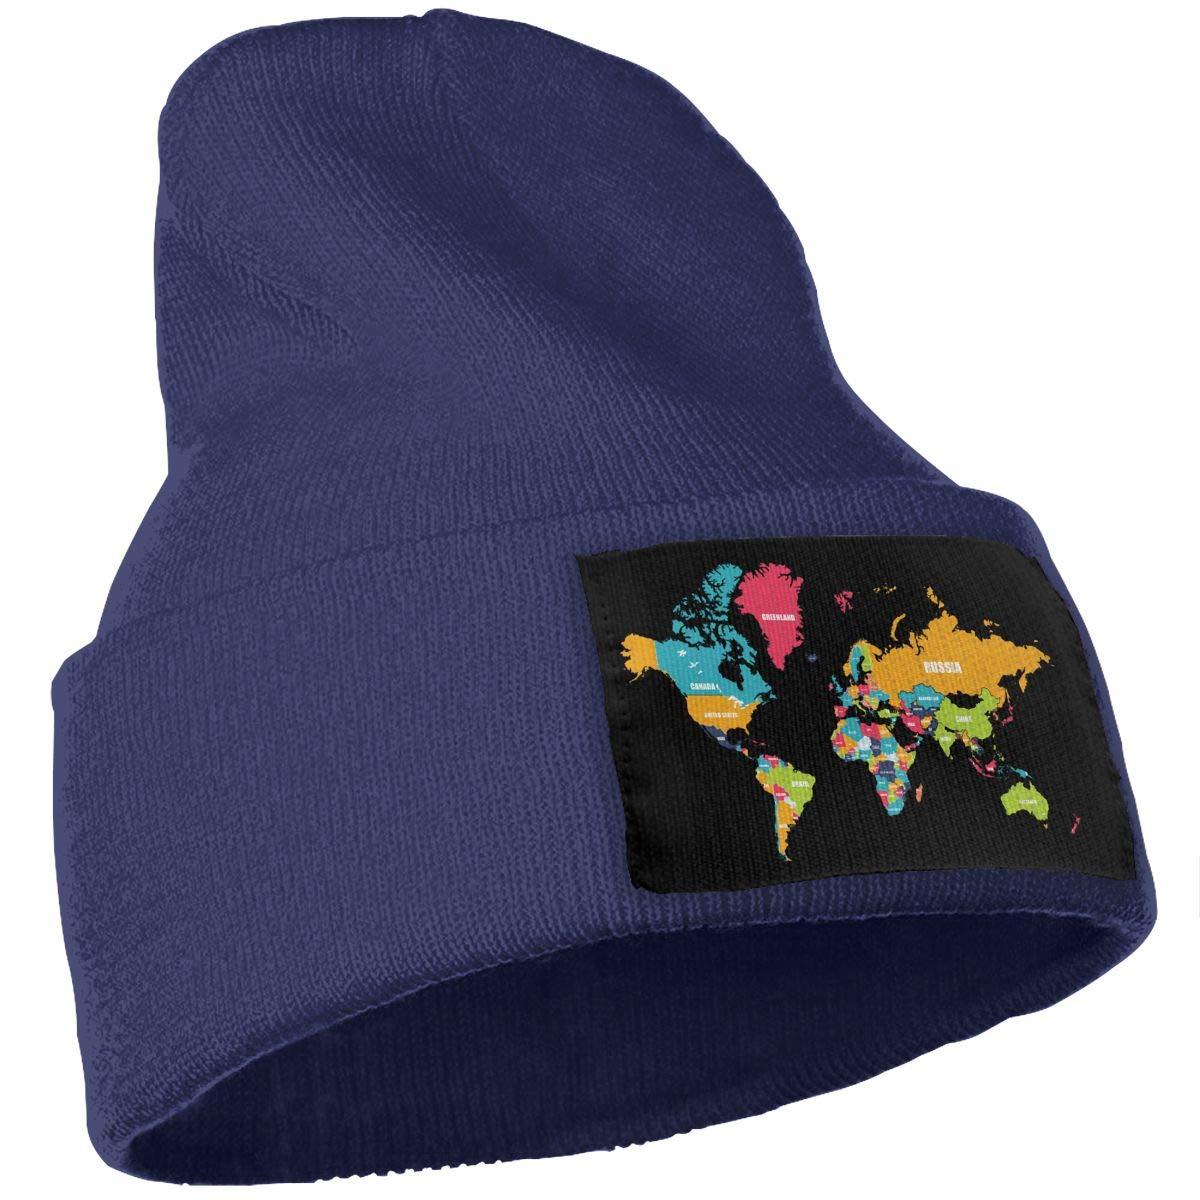 COLLJL-8 Unisex World Map Outdoor Stretch Knit Beanies Hat Soft Winter Knit Caps